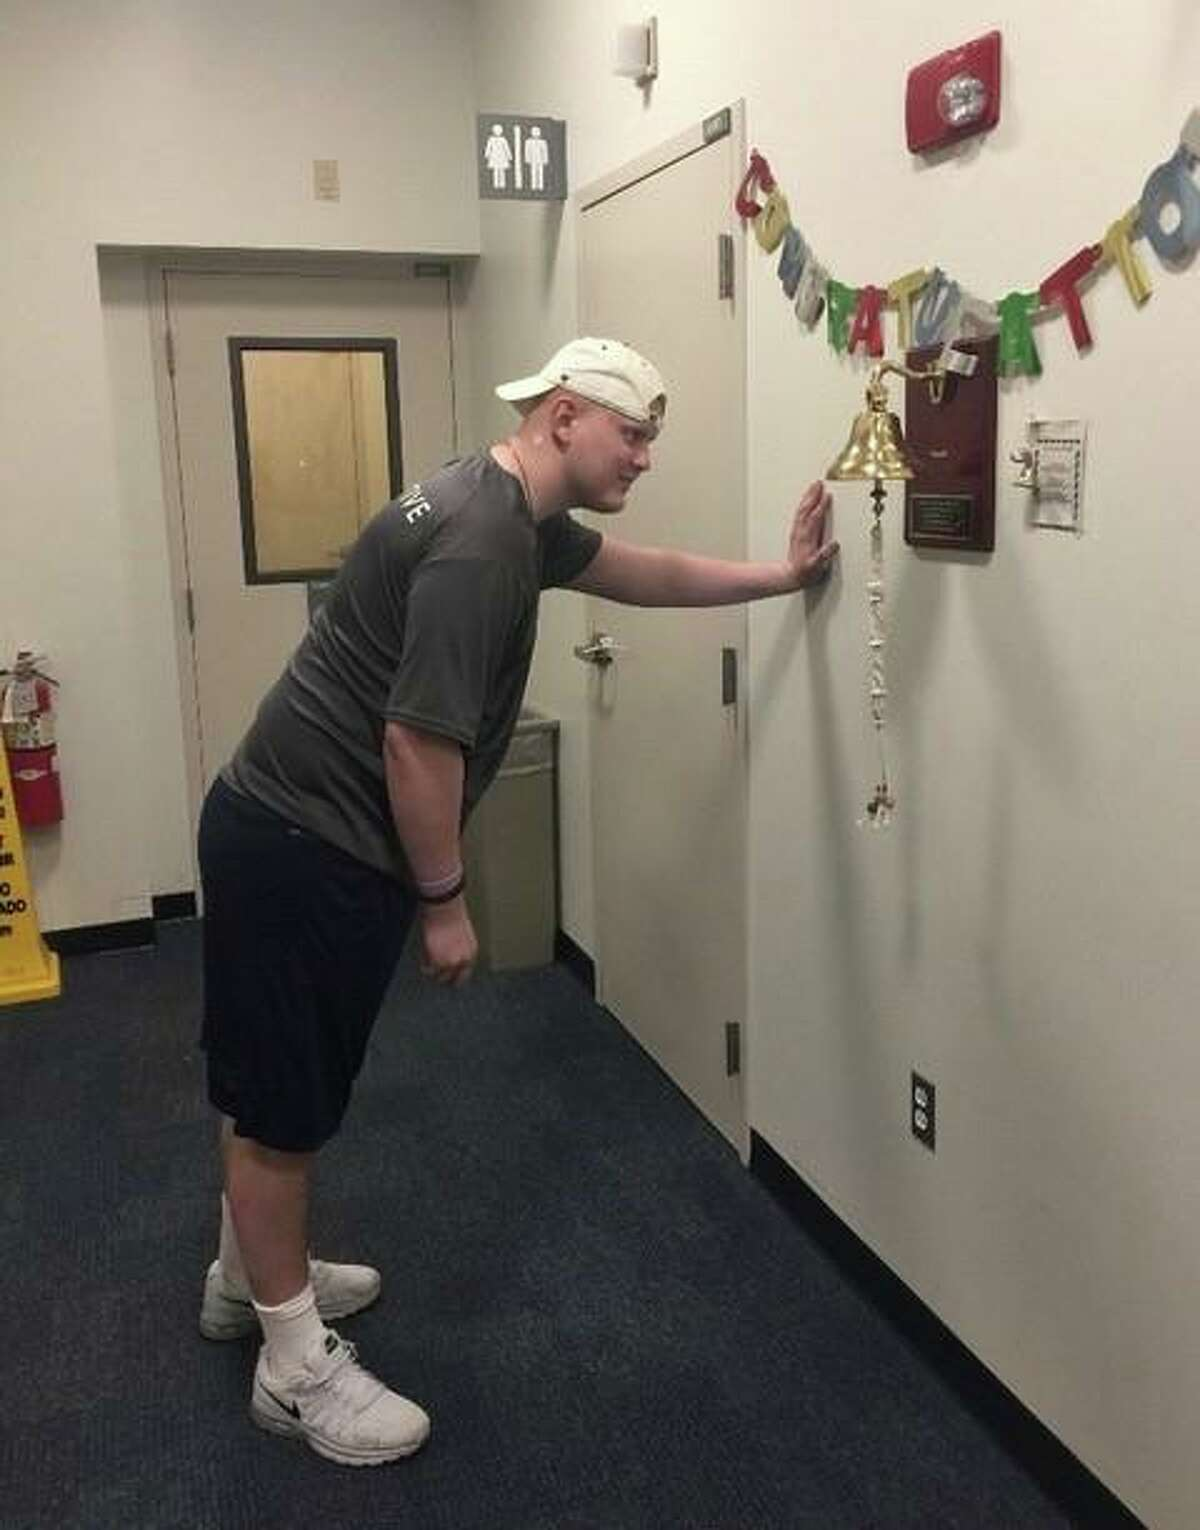 """Alex Bamford, who was diagnosed with a rare pediatric cancer at age 16, at Massachusetts General Hospital, where he endured two months of chemotherapy and proton radiation treatment. When a patient finishes treatment, they are allowed to """"ring the bell,"""" according to his father, Mark Bamford."""